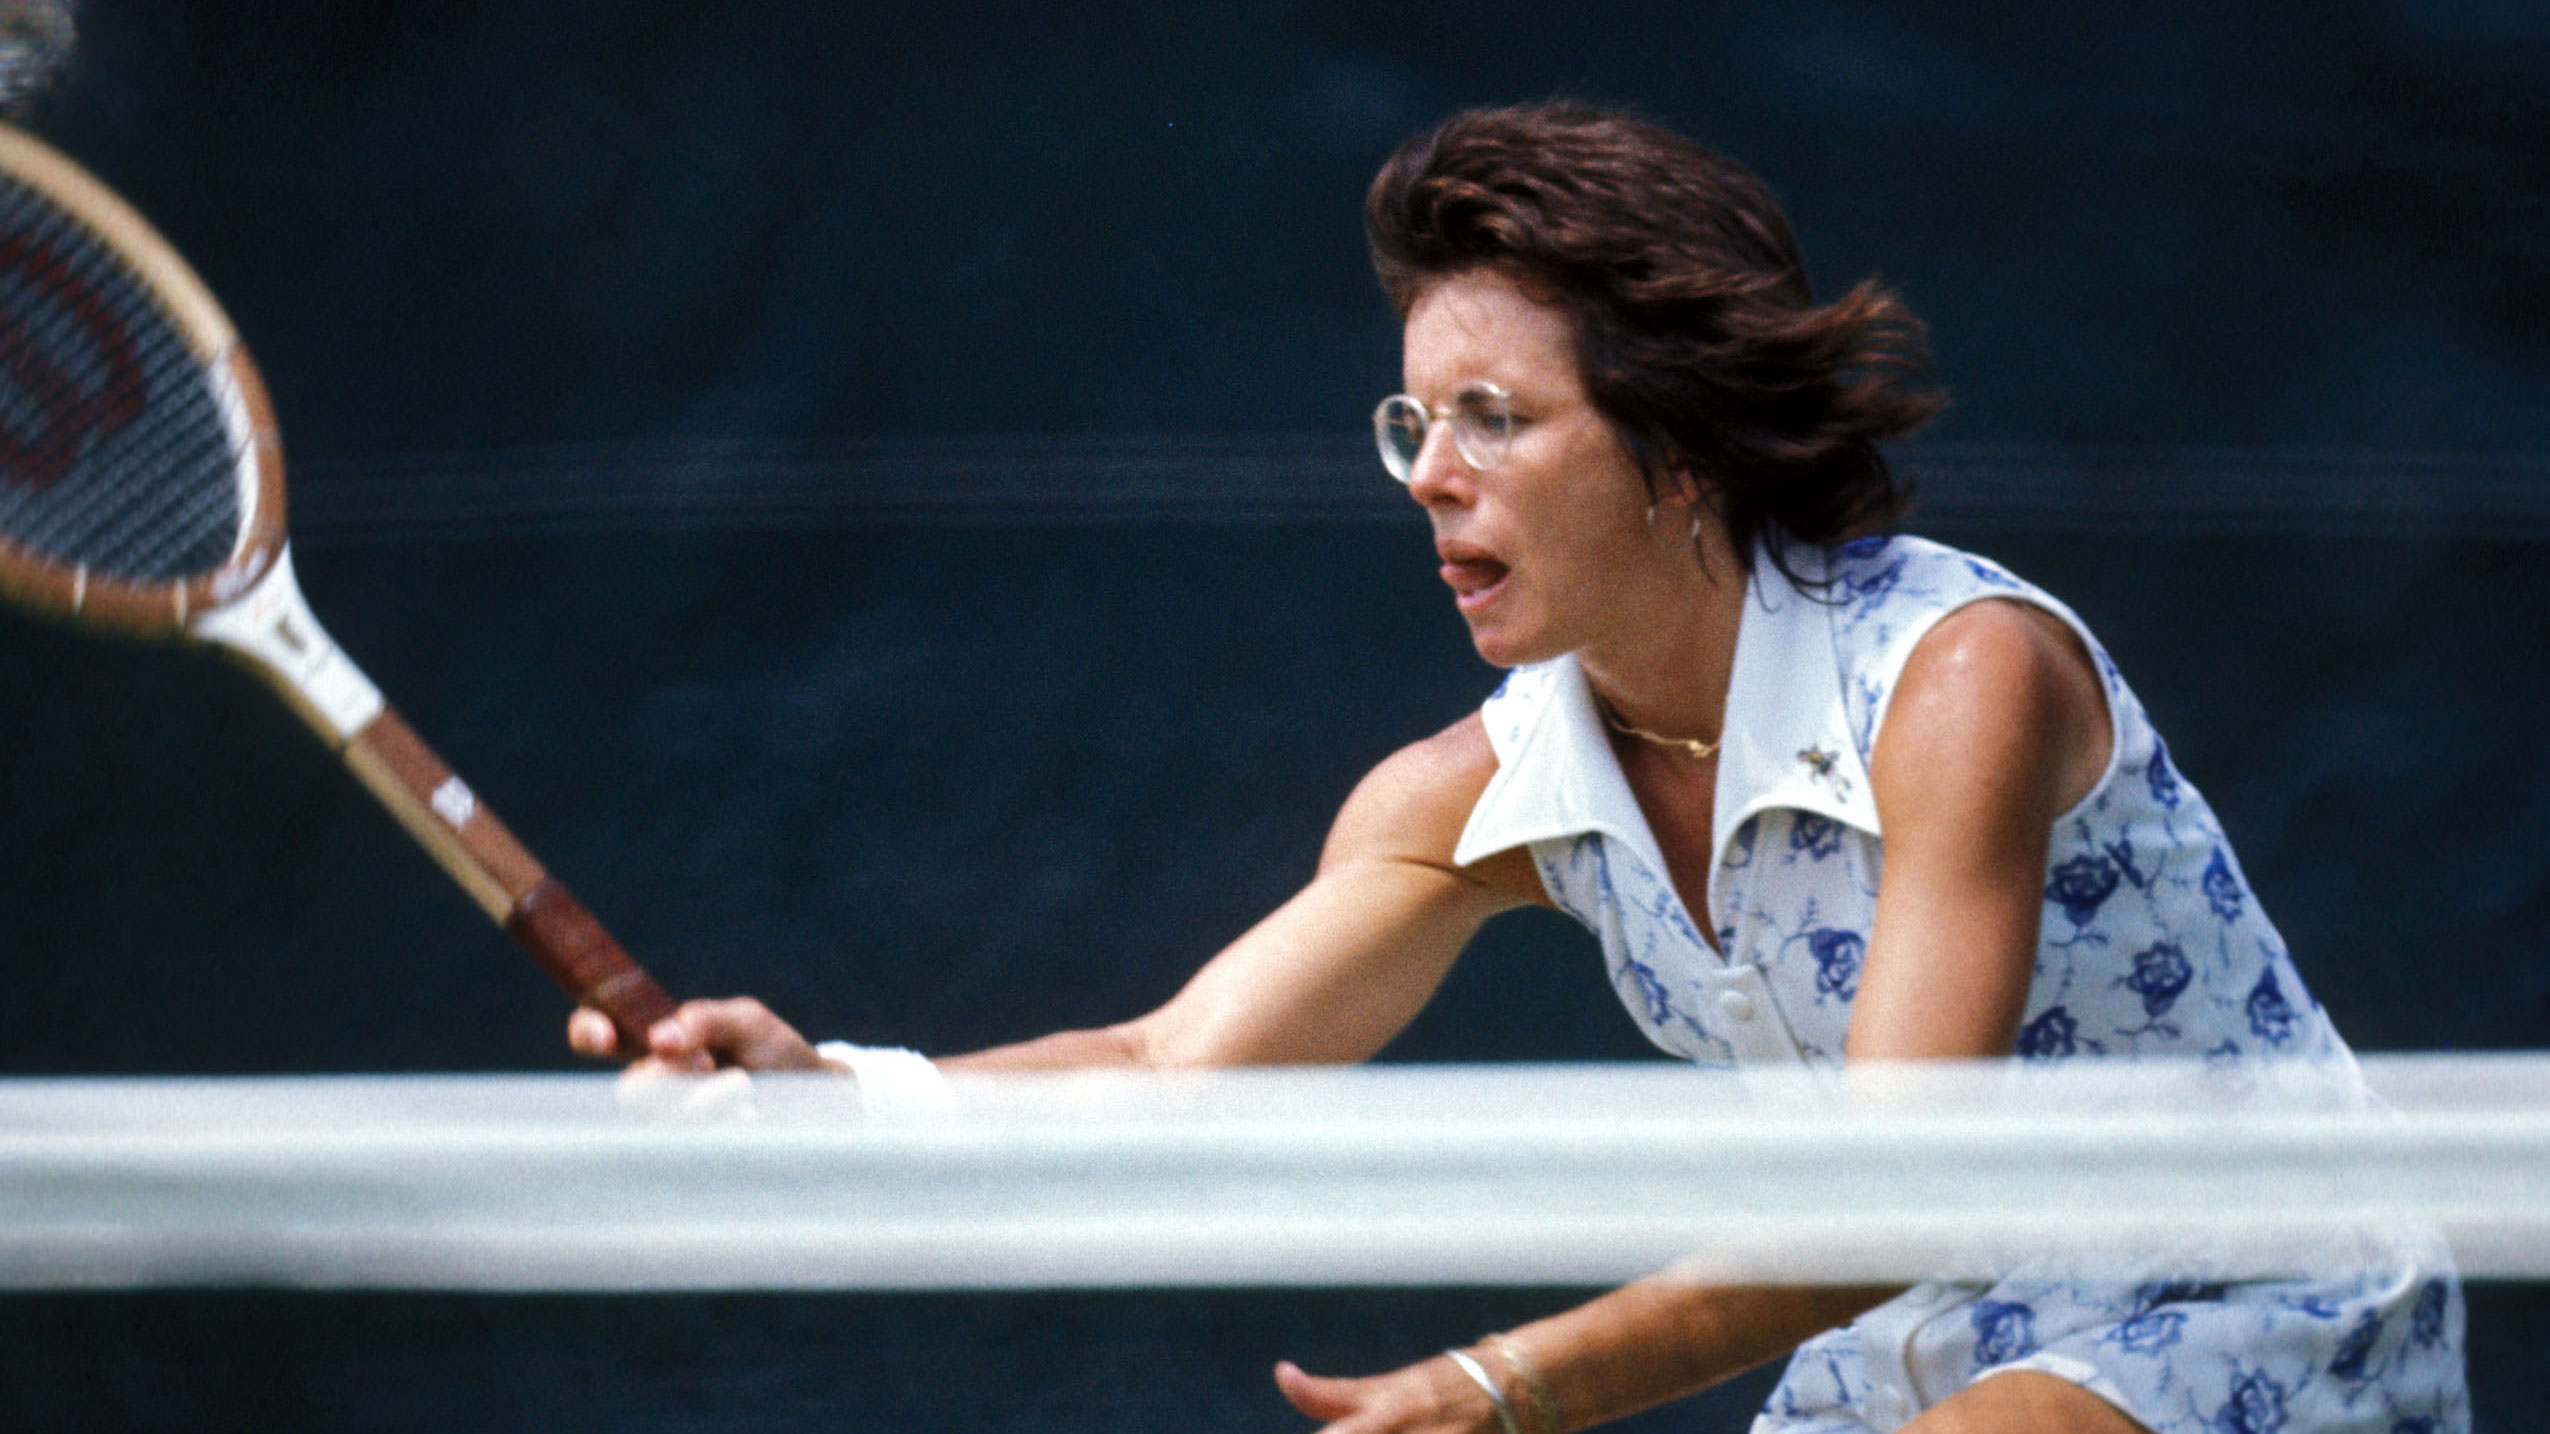 Fed Cup Changes Name To Honor Tennis Great Billie Jean King Nbc Sports